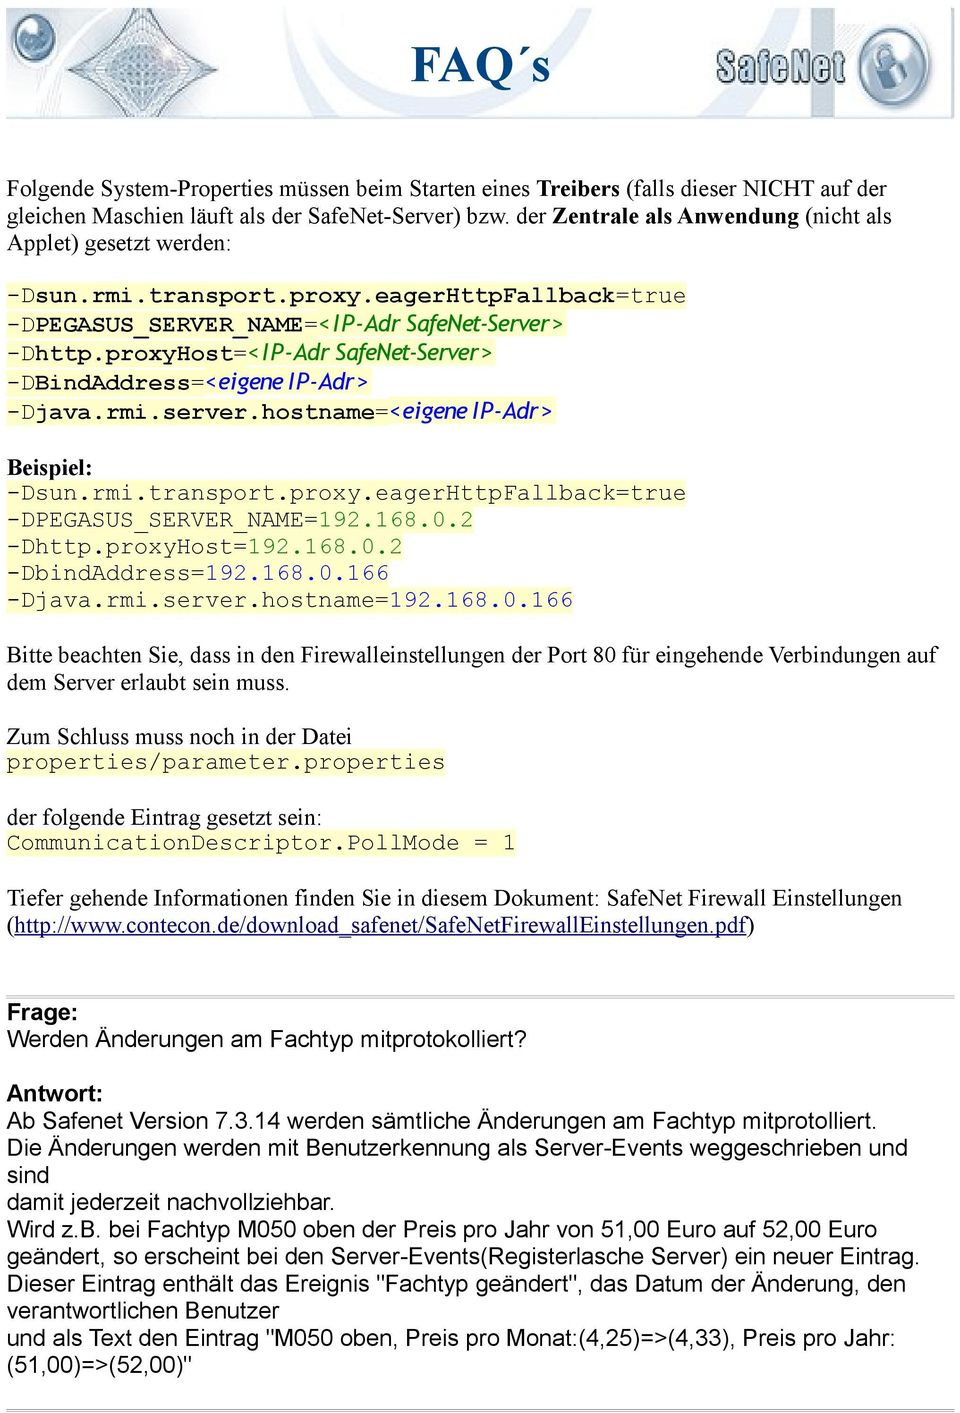 proxyHost=< IP-Adr SafeNet-Server> -DBindAddress=<eigene IP-Adr> -Djava.rmi.server.hostname=<eigene IP-Adr> Beispiel: -Dsun.rmi.transport.proxy.eagerHttpFallback=true -DPEGASUS_SERVER_NAME=192.168.0.